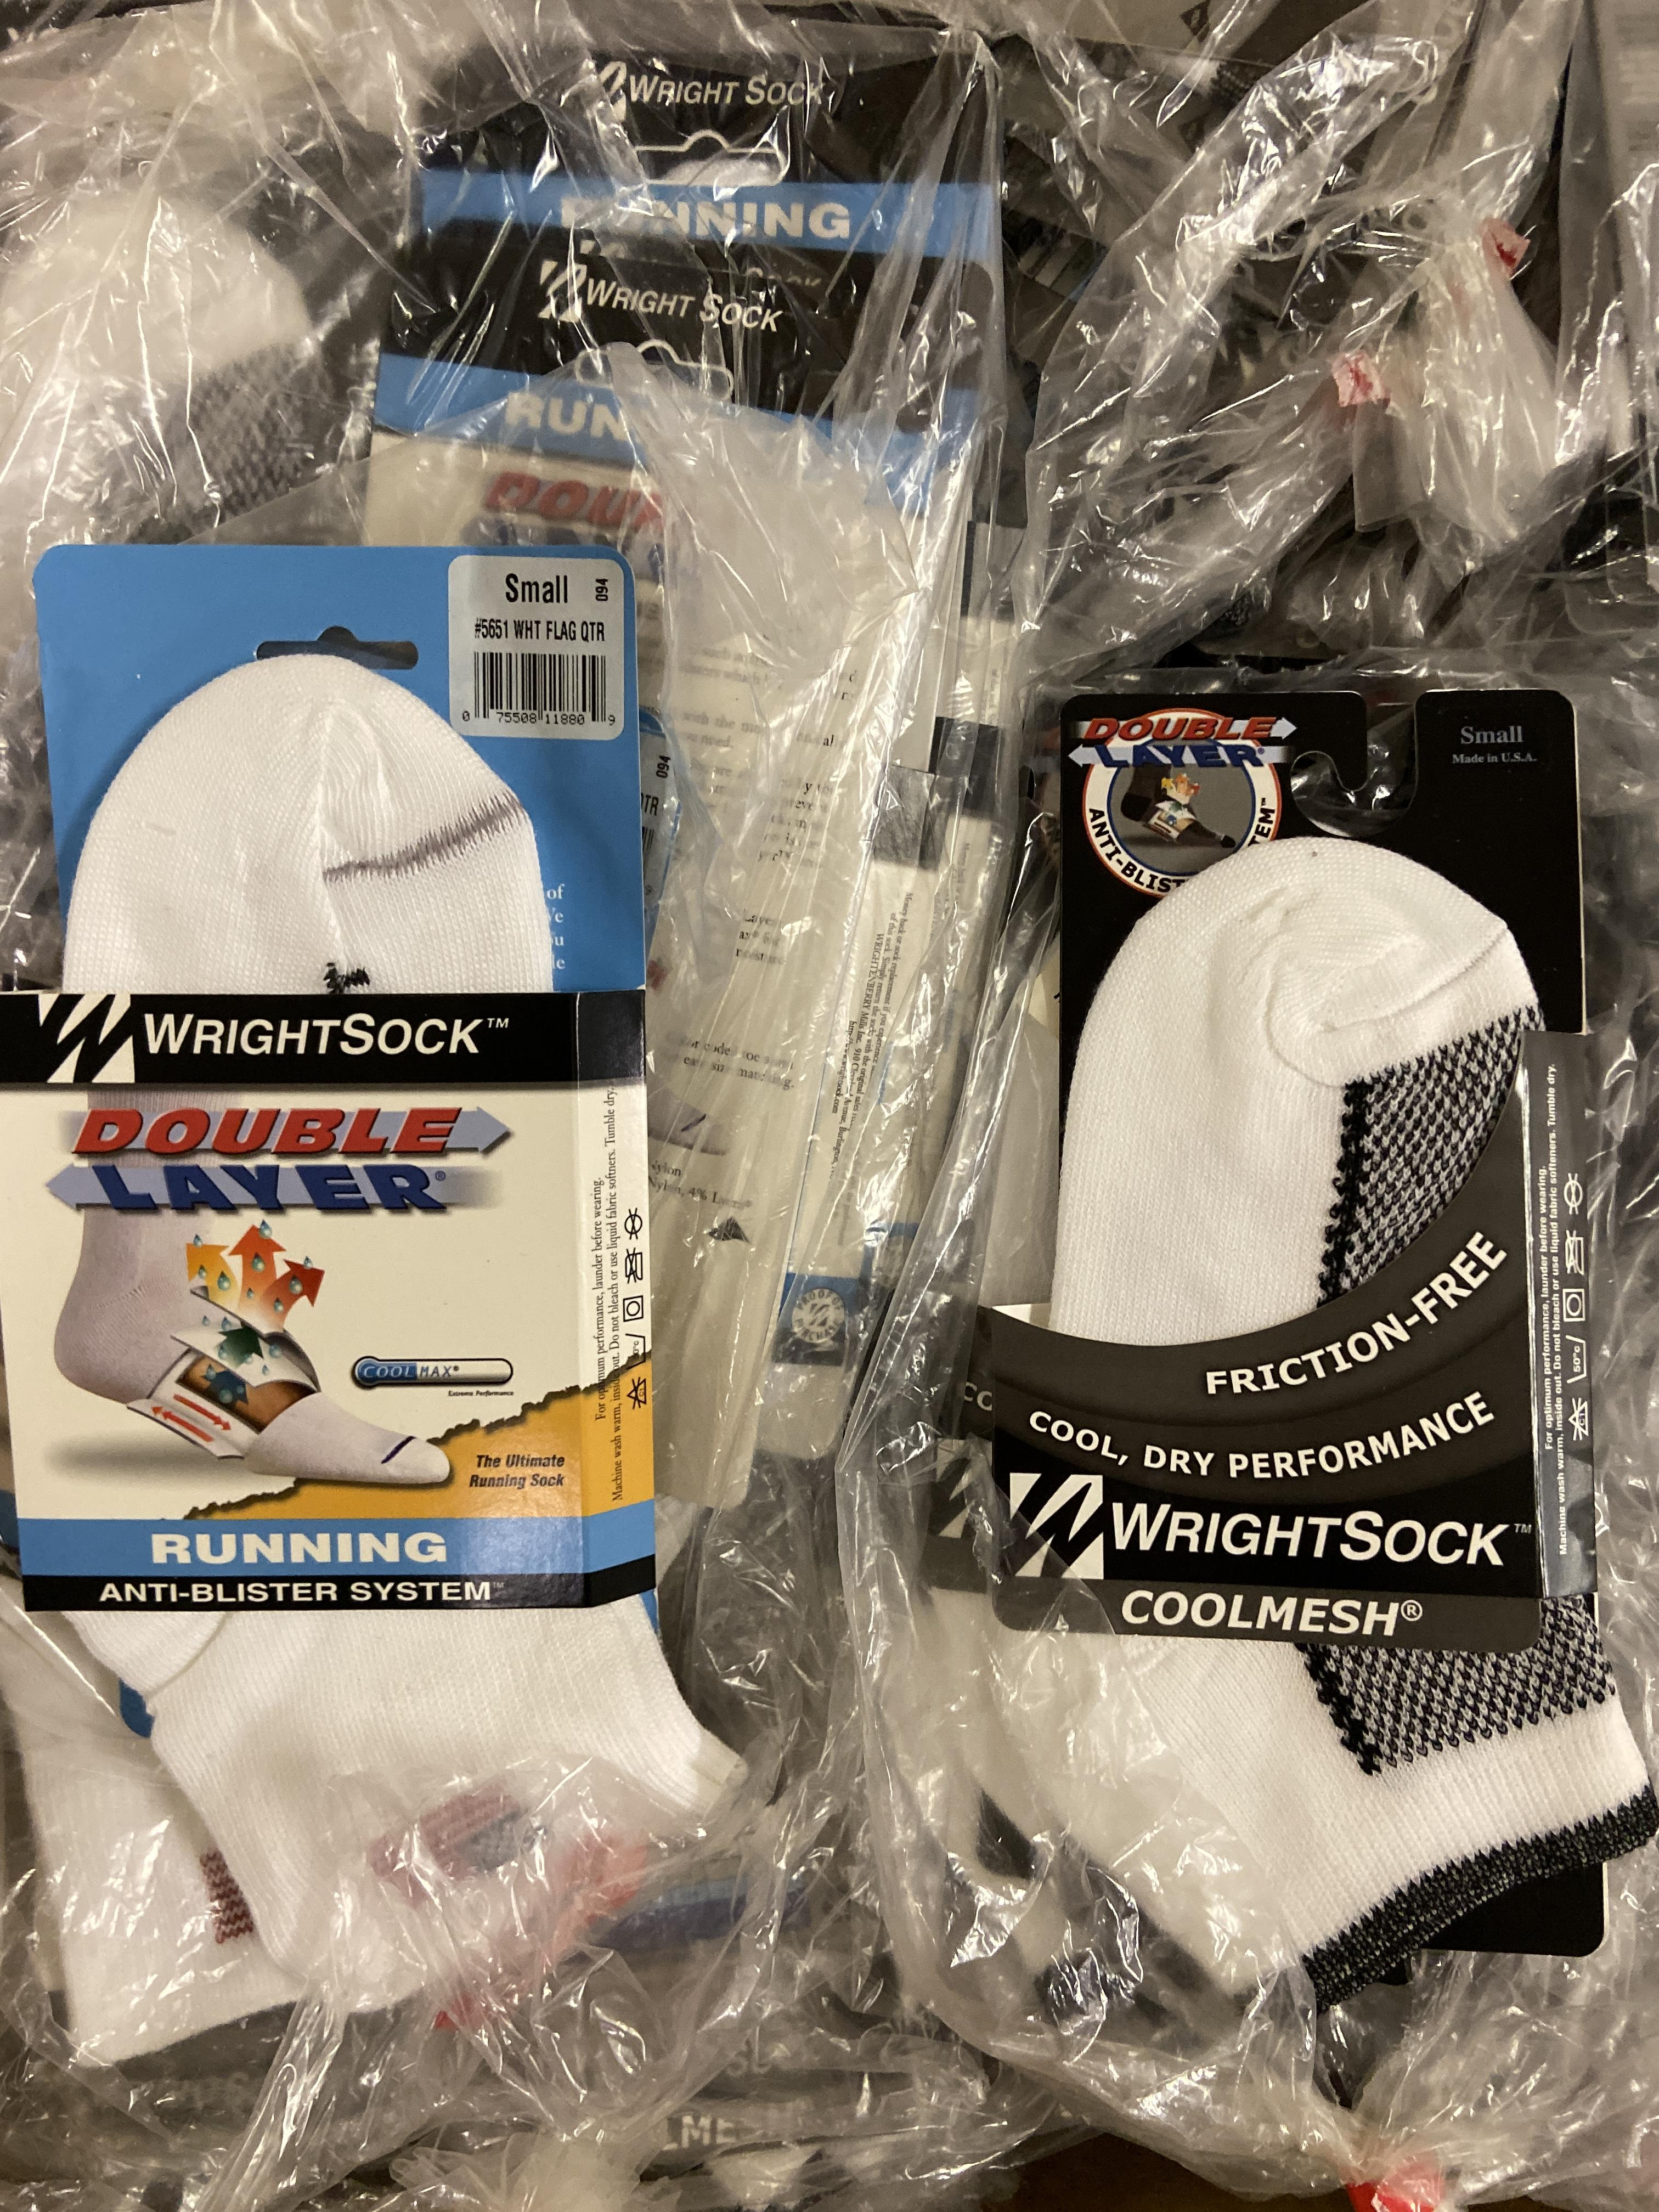 Lot 16 - 250+ packs of New Socks, Wrightsock Coolmesh and Running, Double Layer, USA America Flag and White/